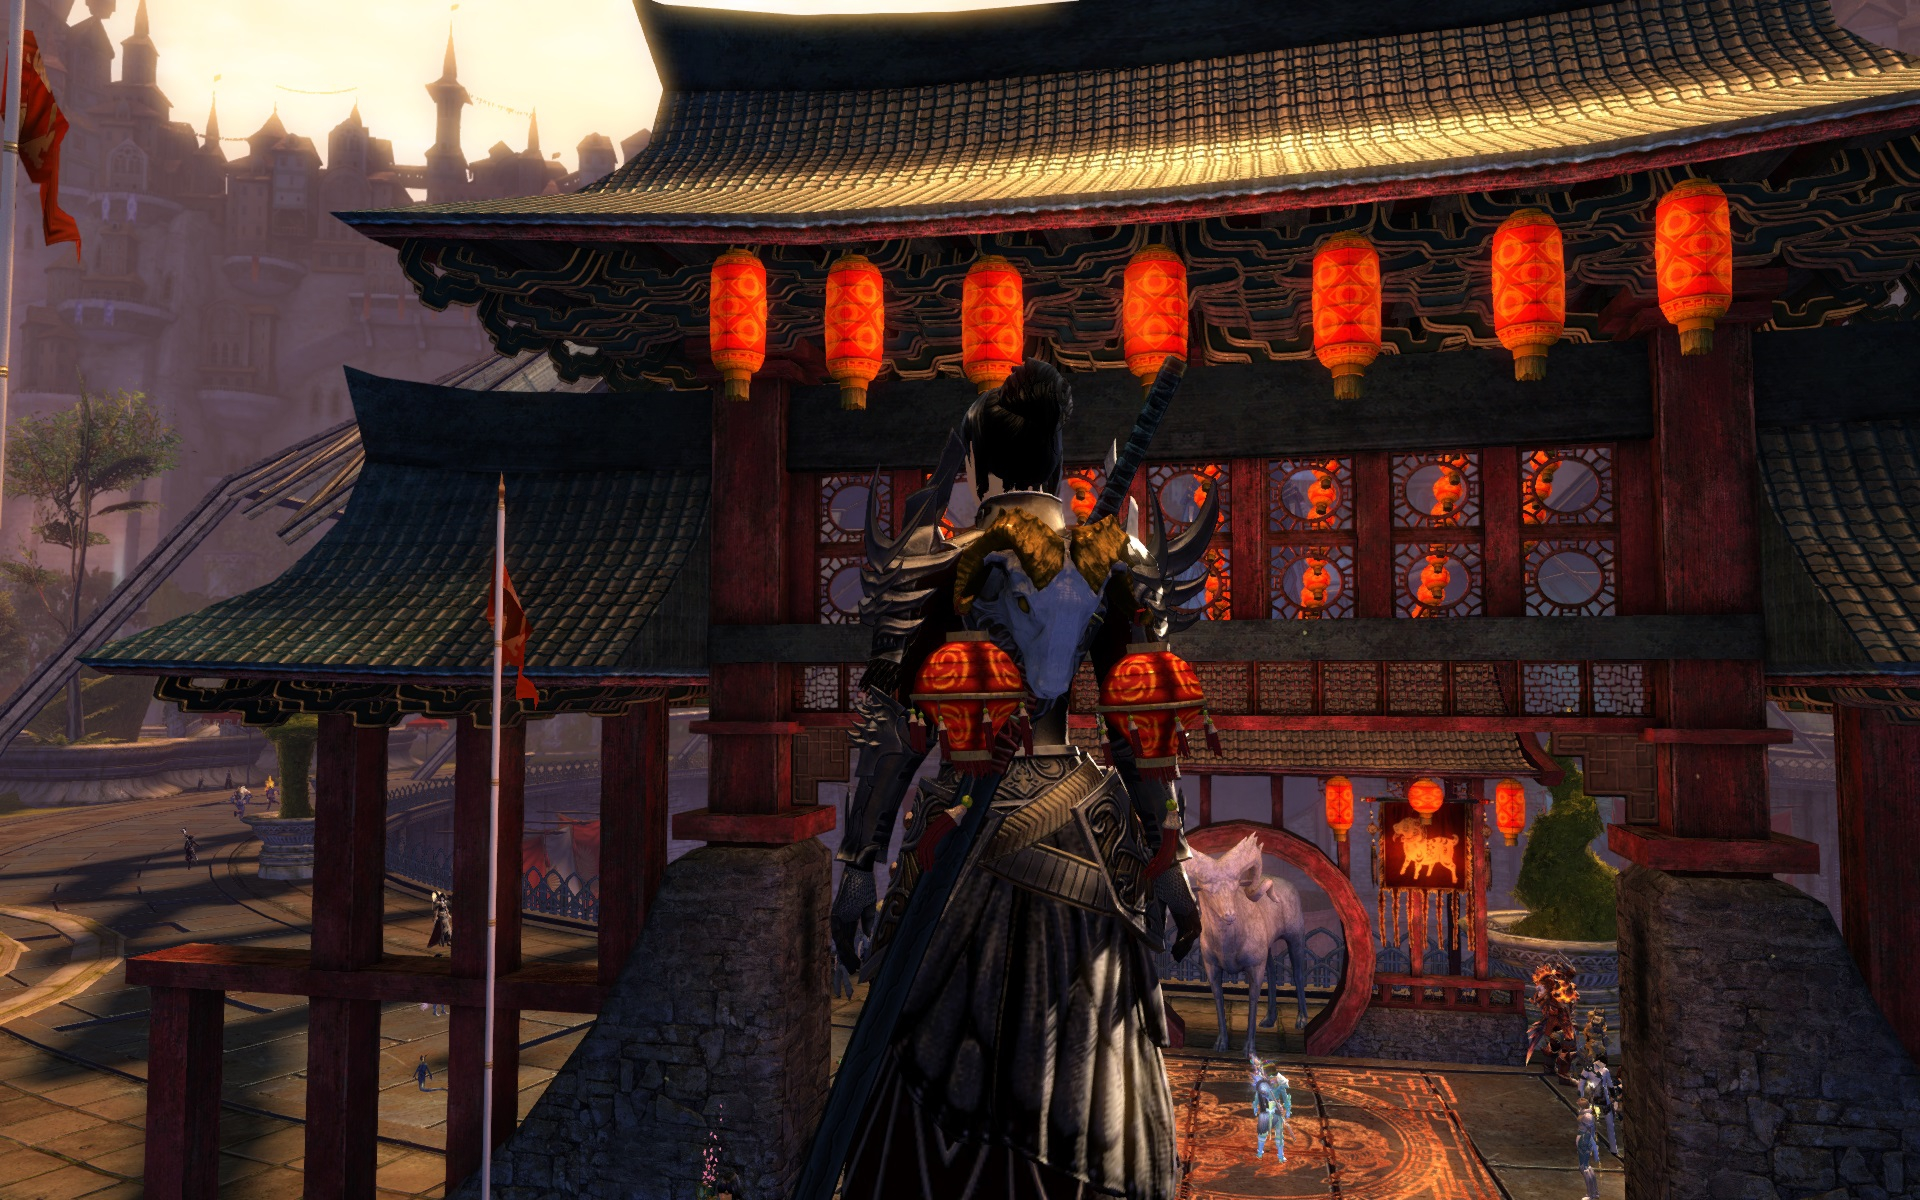 Gw2 Lunar New Year 2020.Guild Wars 2 Gets Into The Lunar New Year Spirit As New